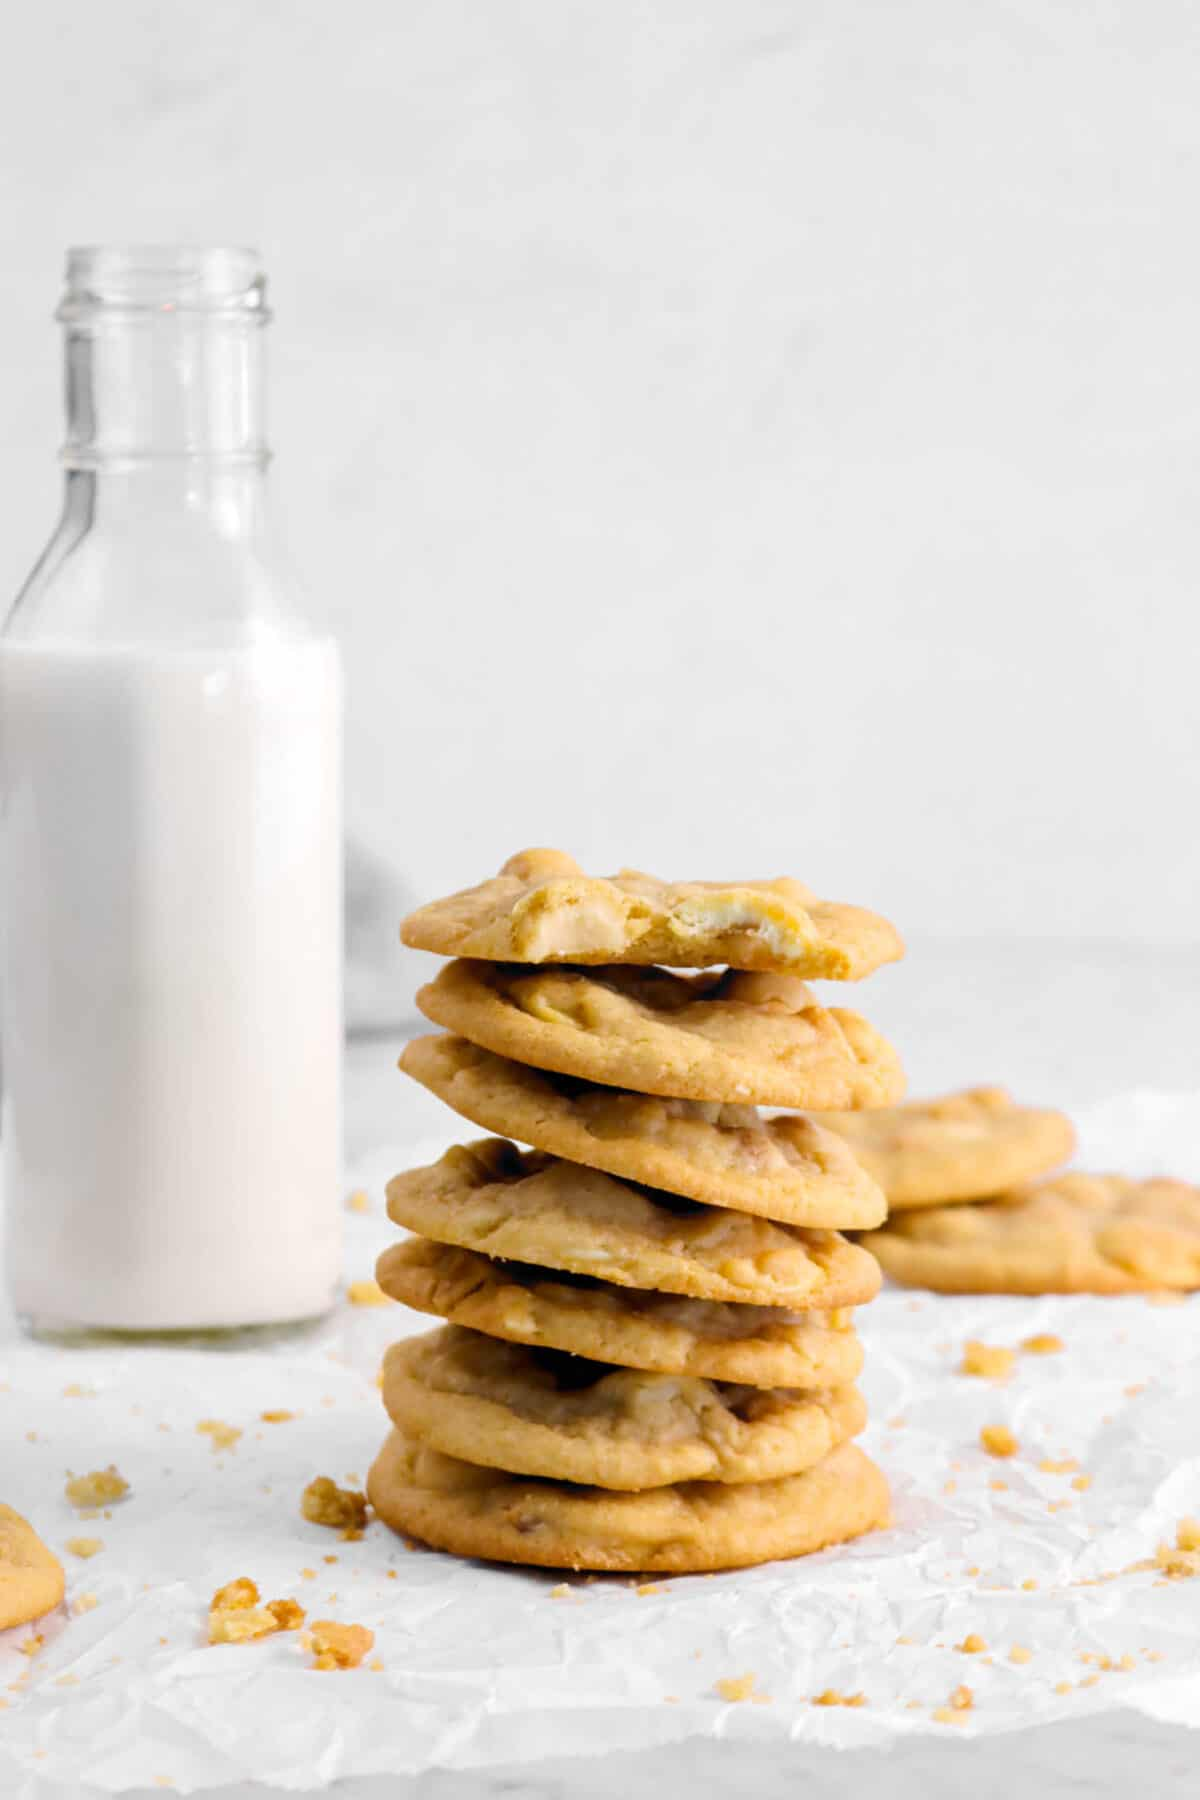 seven stacked cookies with a bite taken out of one with glass of milk behind